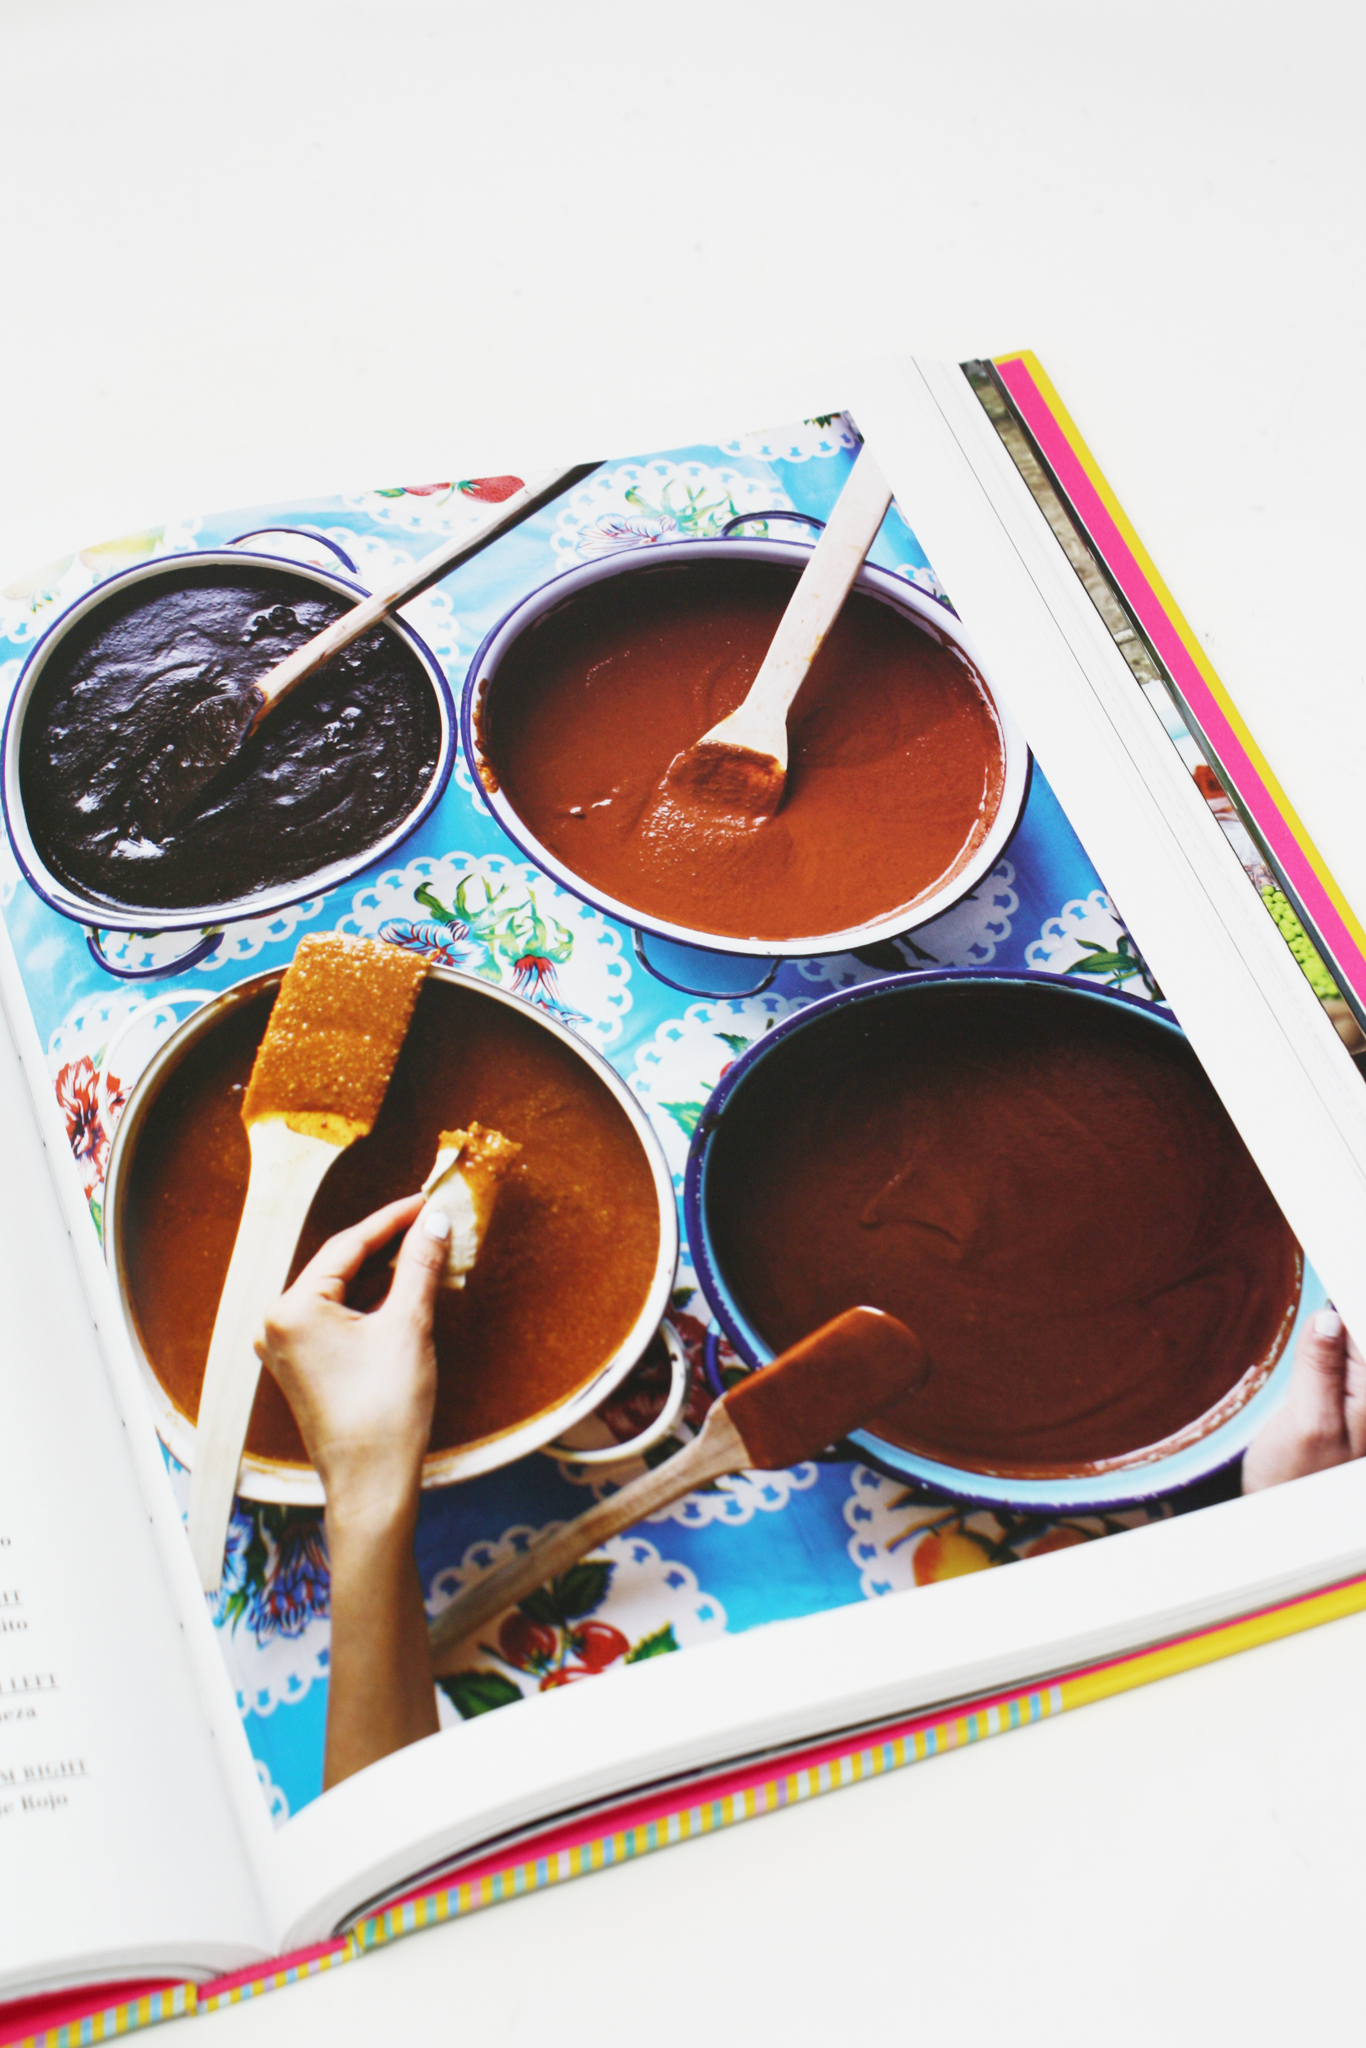 Oaxaca: Home Cooking from the Heart of Mexico Mole Negro recipe